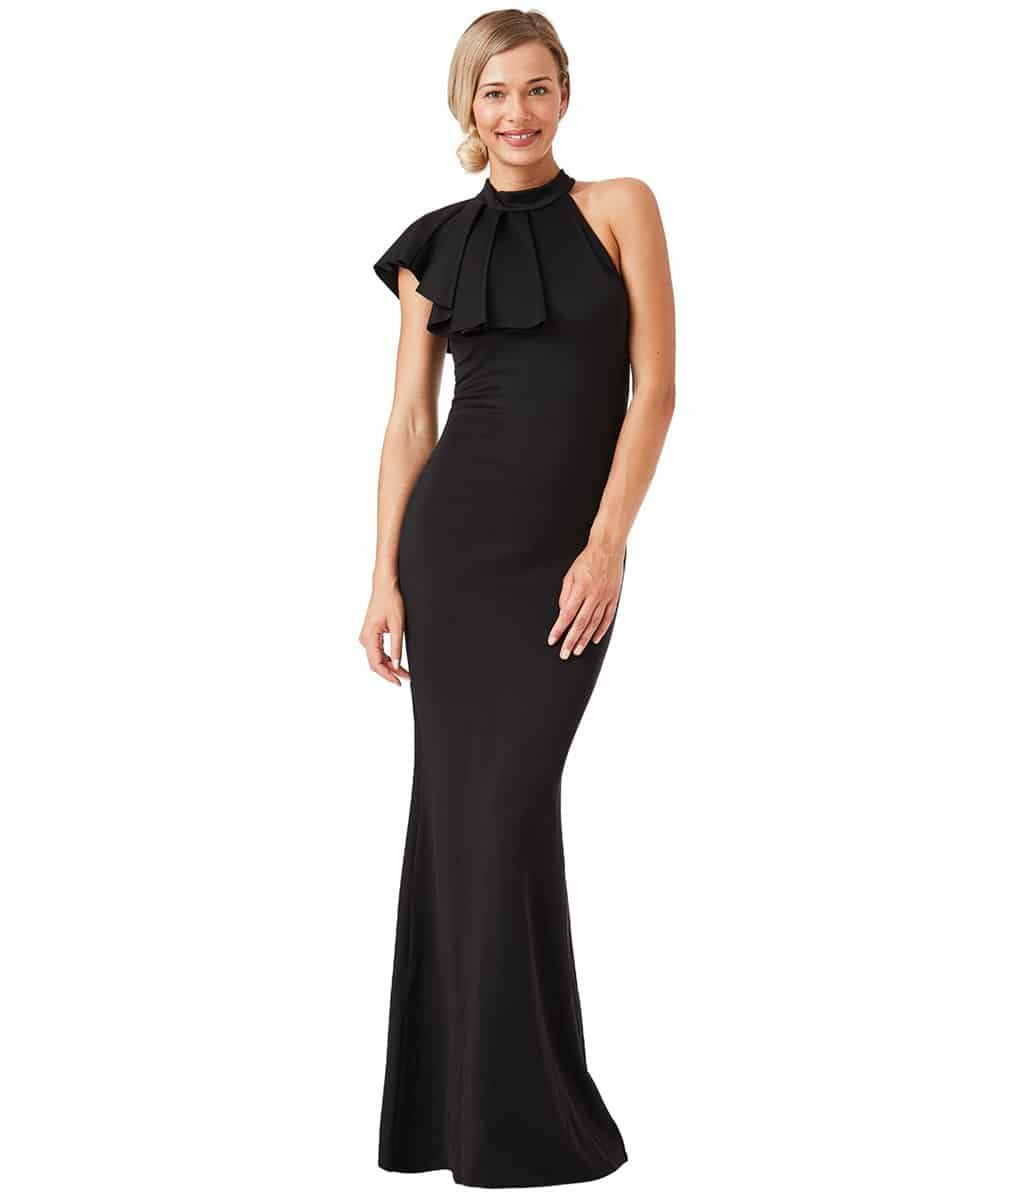 City Goddess - Black Ruffle Collar Gown